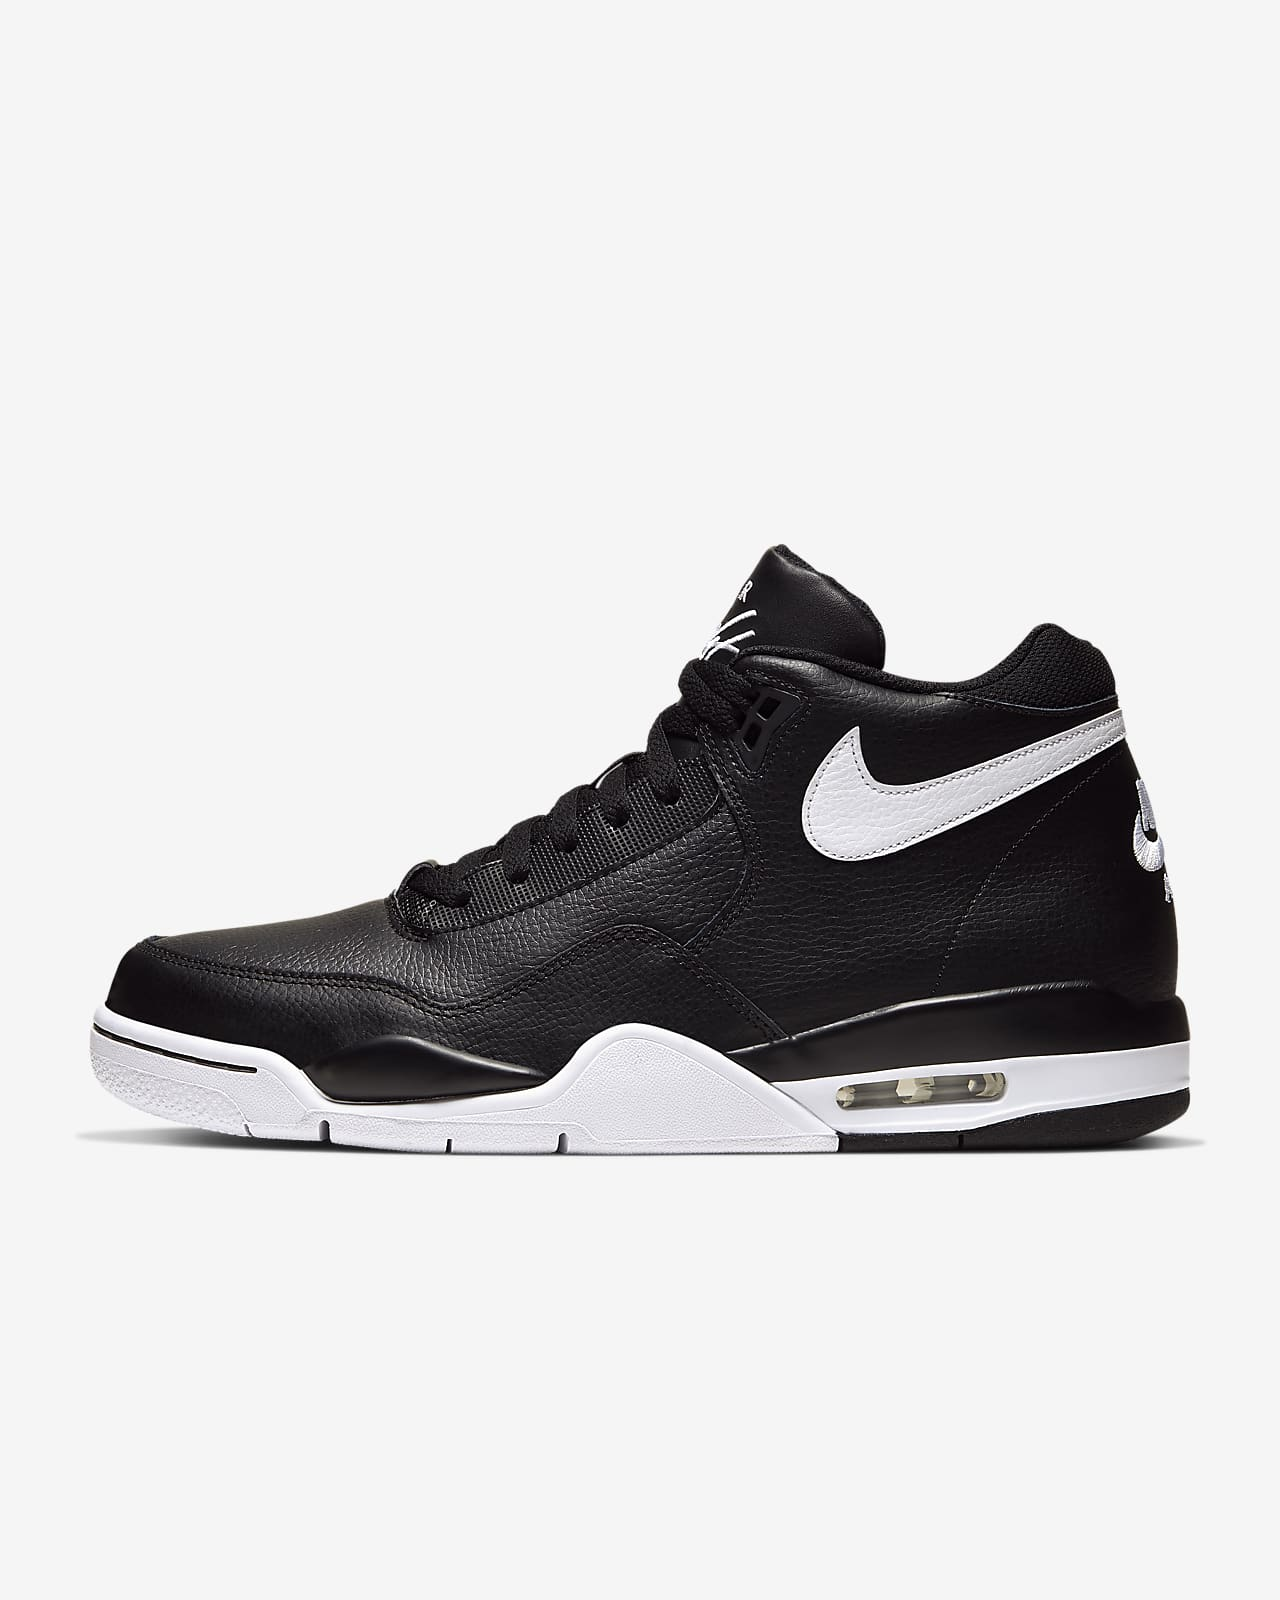 Nike Flight Legacy Men's Shoe